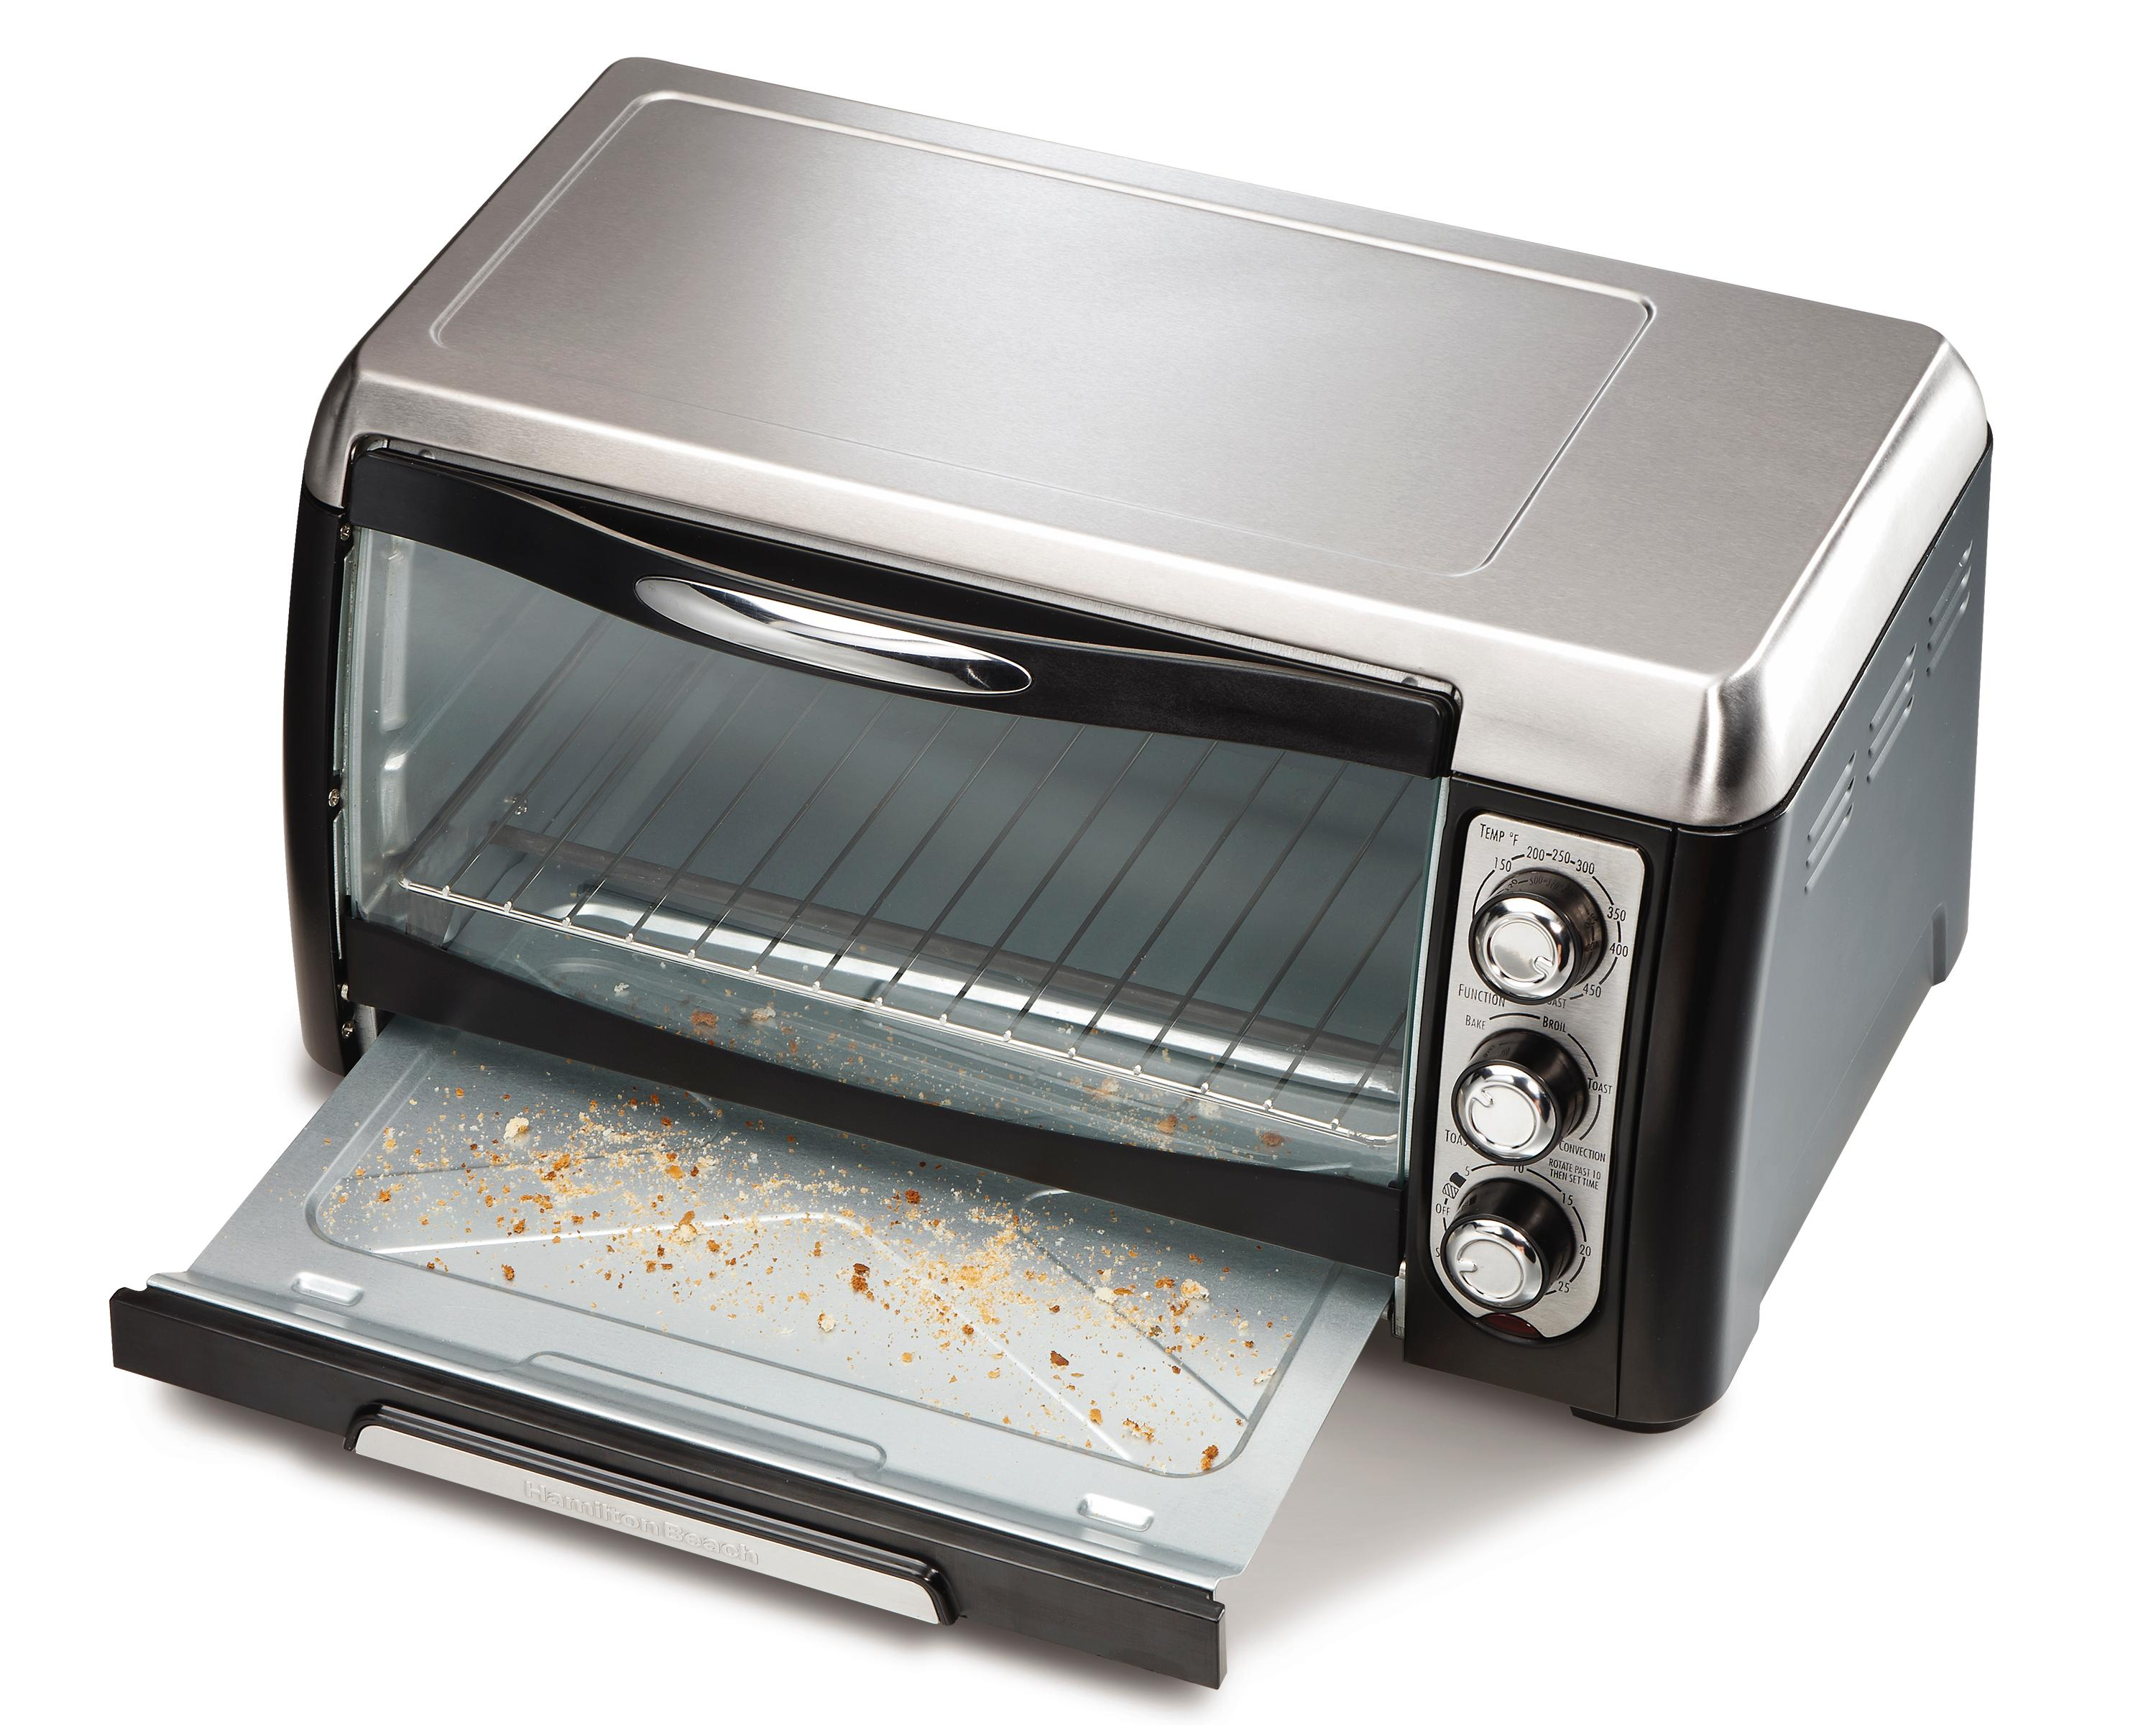 calphalon toaster oven manual convection